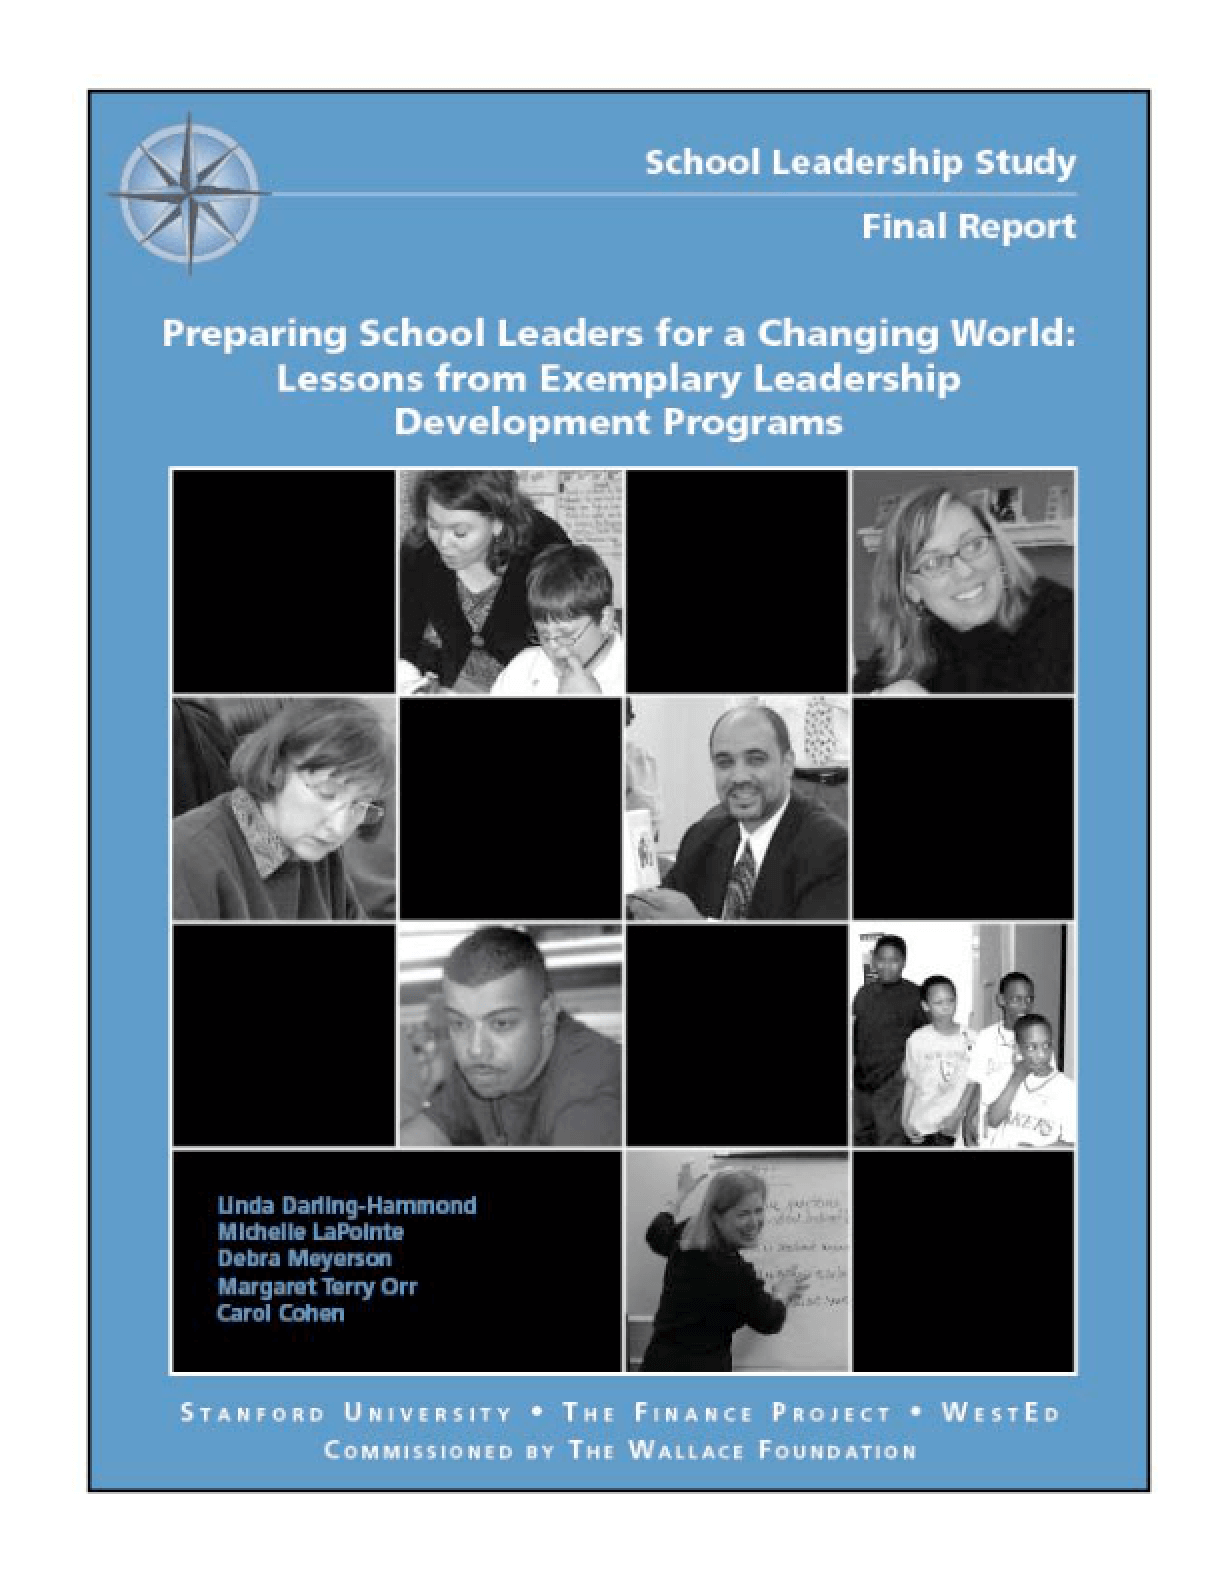 Preparing School Leaders for a Changing World: Lessons From Exemplary Leadership Development Programs